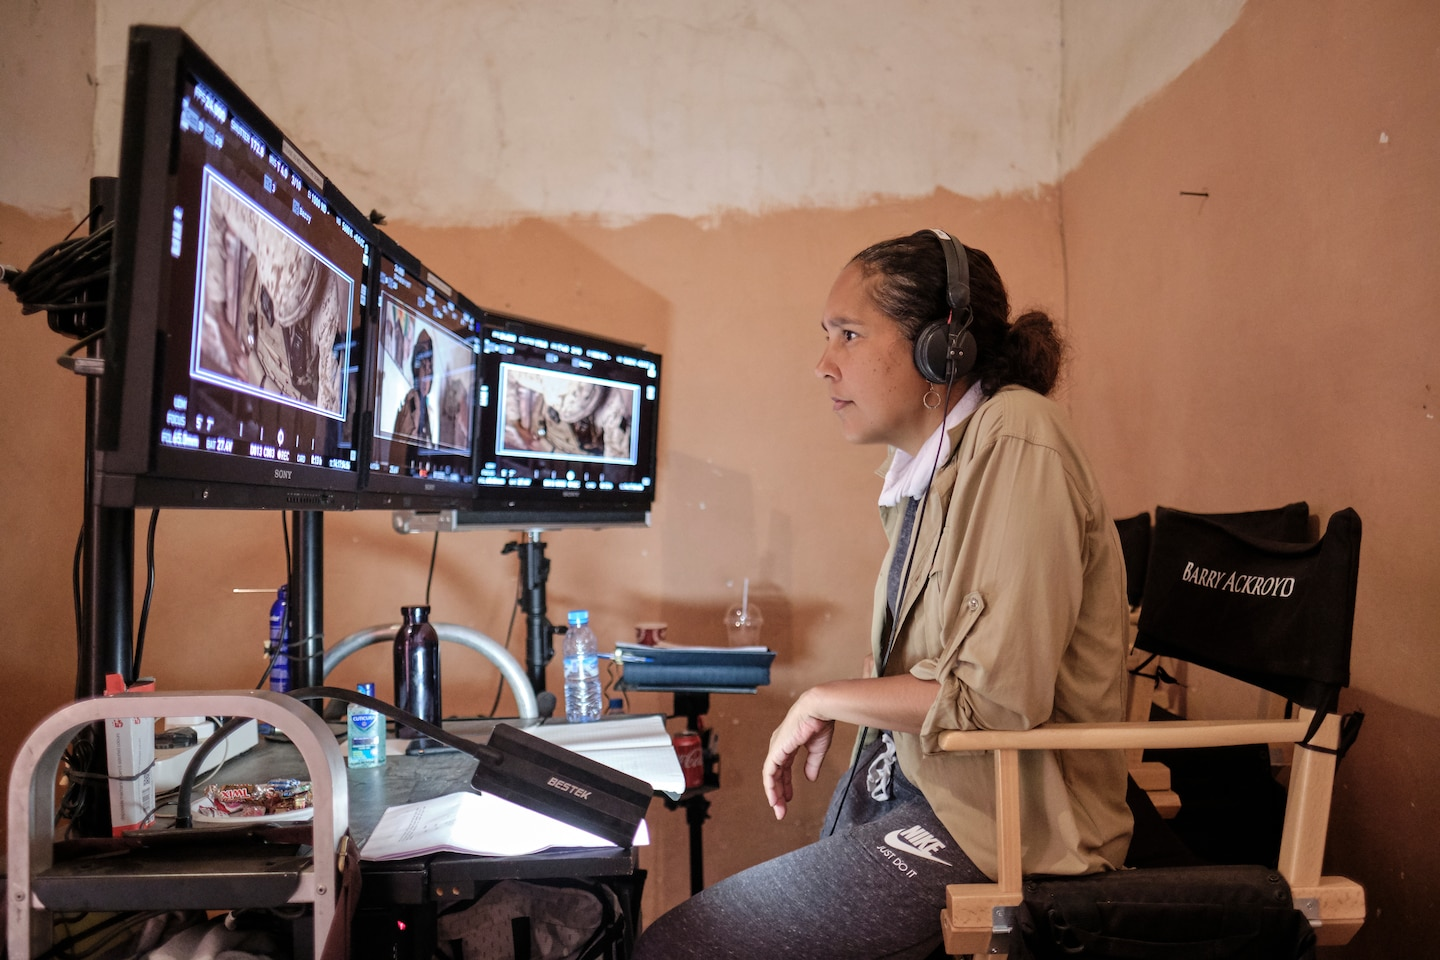 Gina Prince-Bythewood blazes a trail with comic book movie ?The Old Guard?